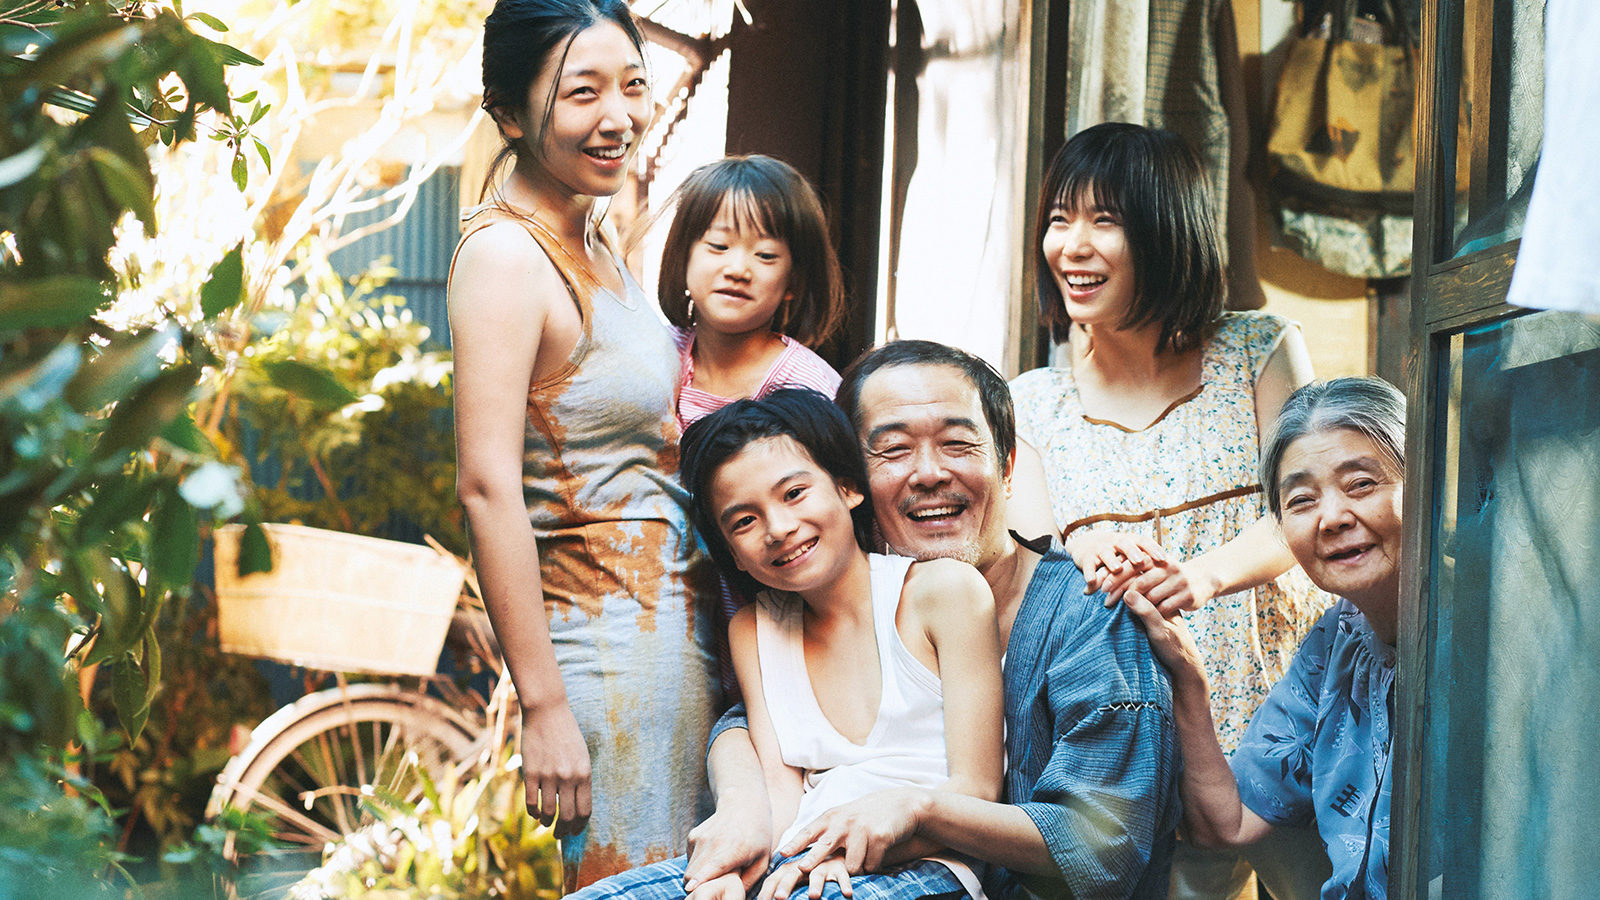 Shoplifters (2018) by Hirokazu Kore-eda